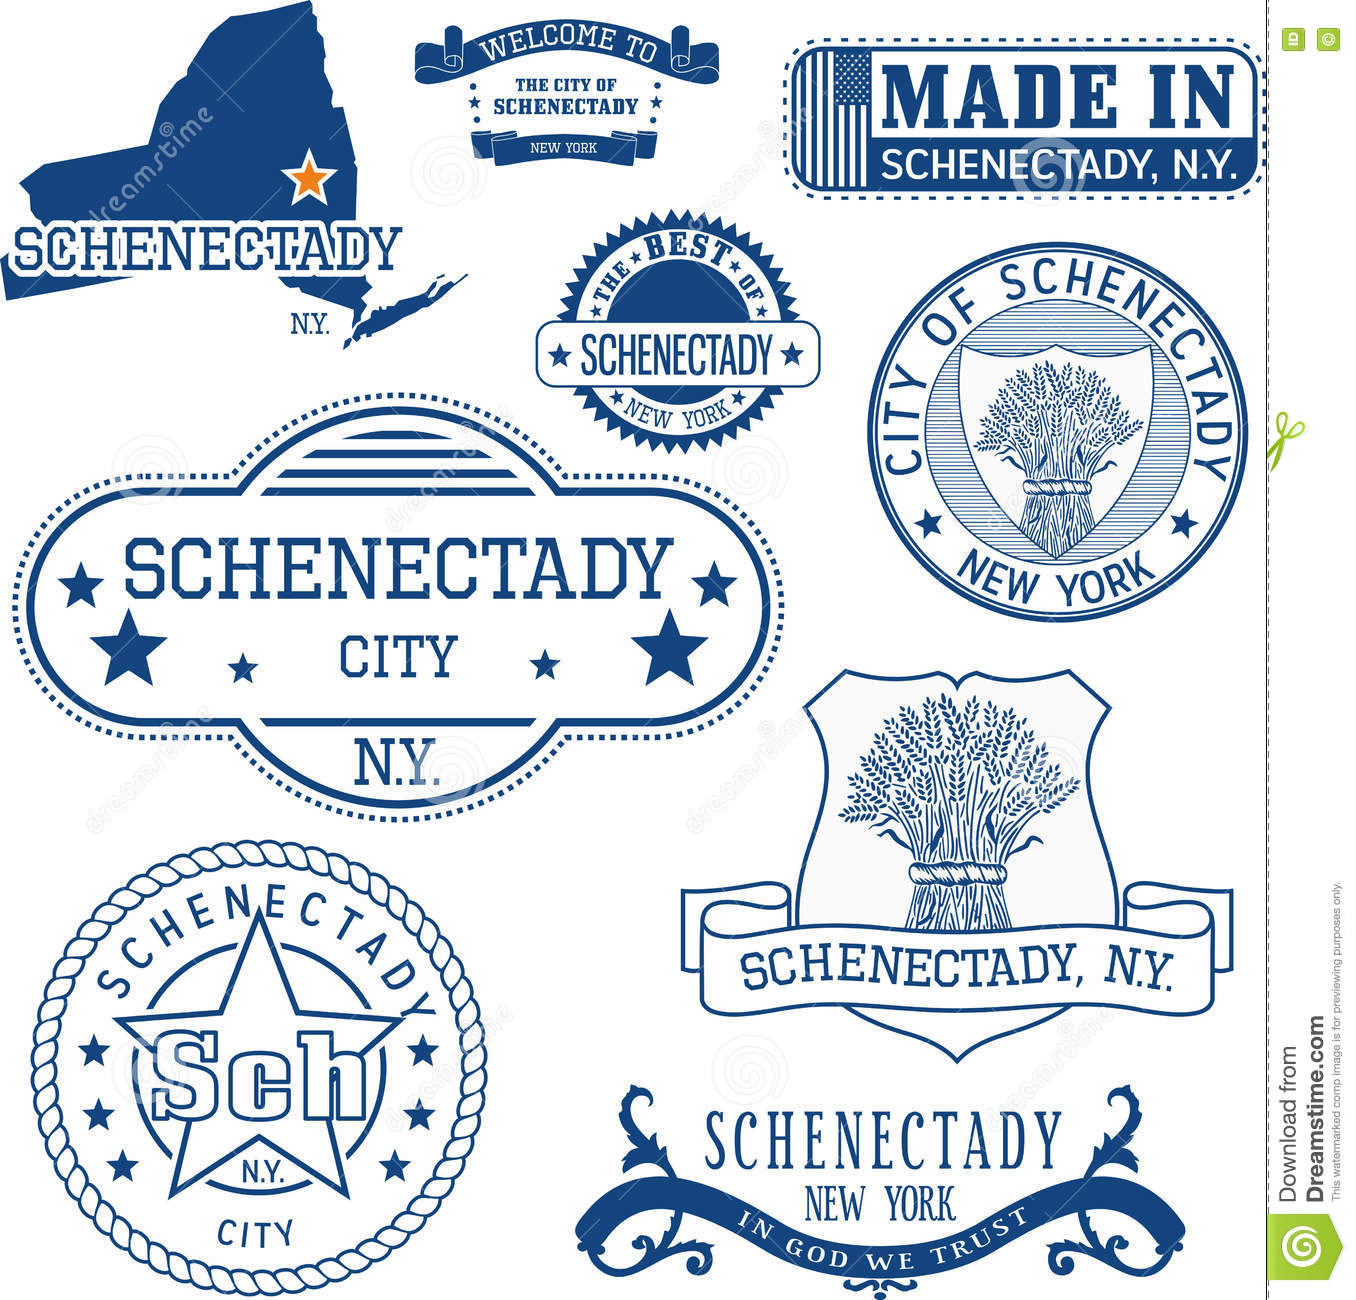 Schenectady New York Map.Schenectady New York Set Of Stamps And Signs Stock Vector